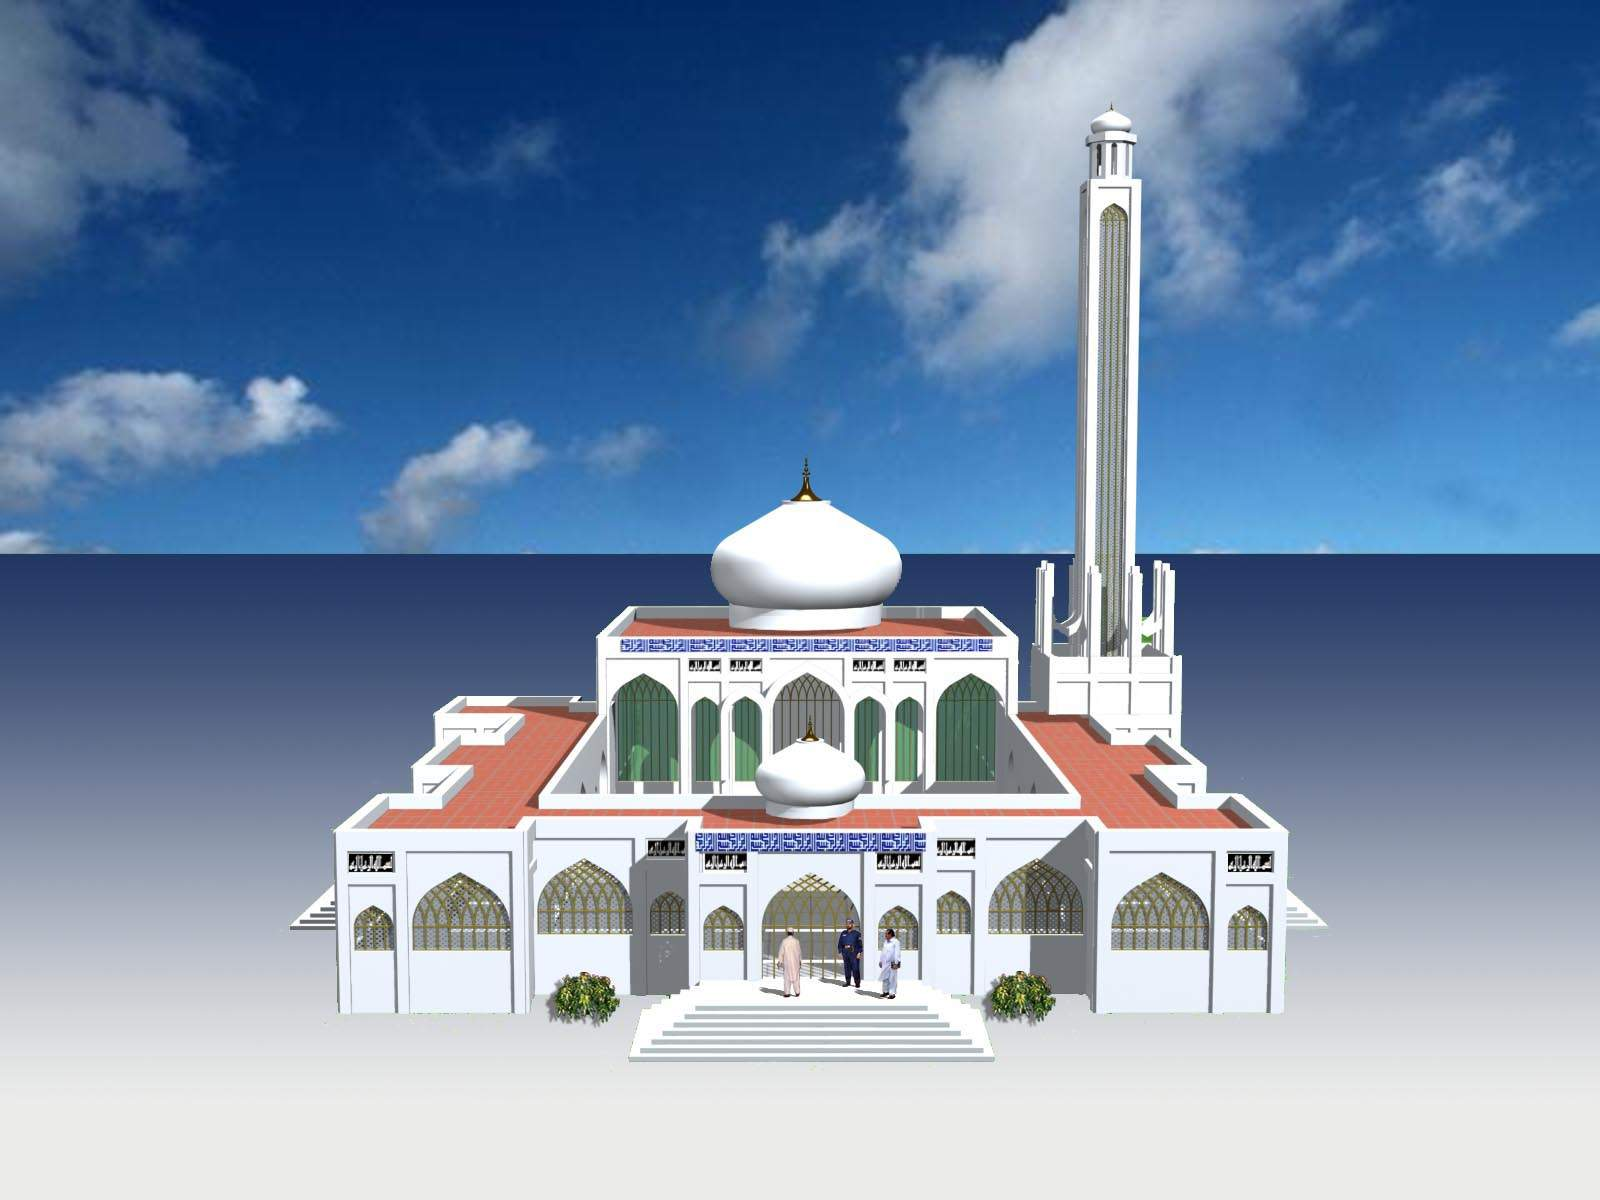 King2011 design for ceiling -  For Ceiling King2011 Mosque And School Design 3d